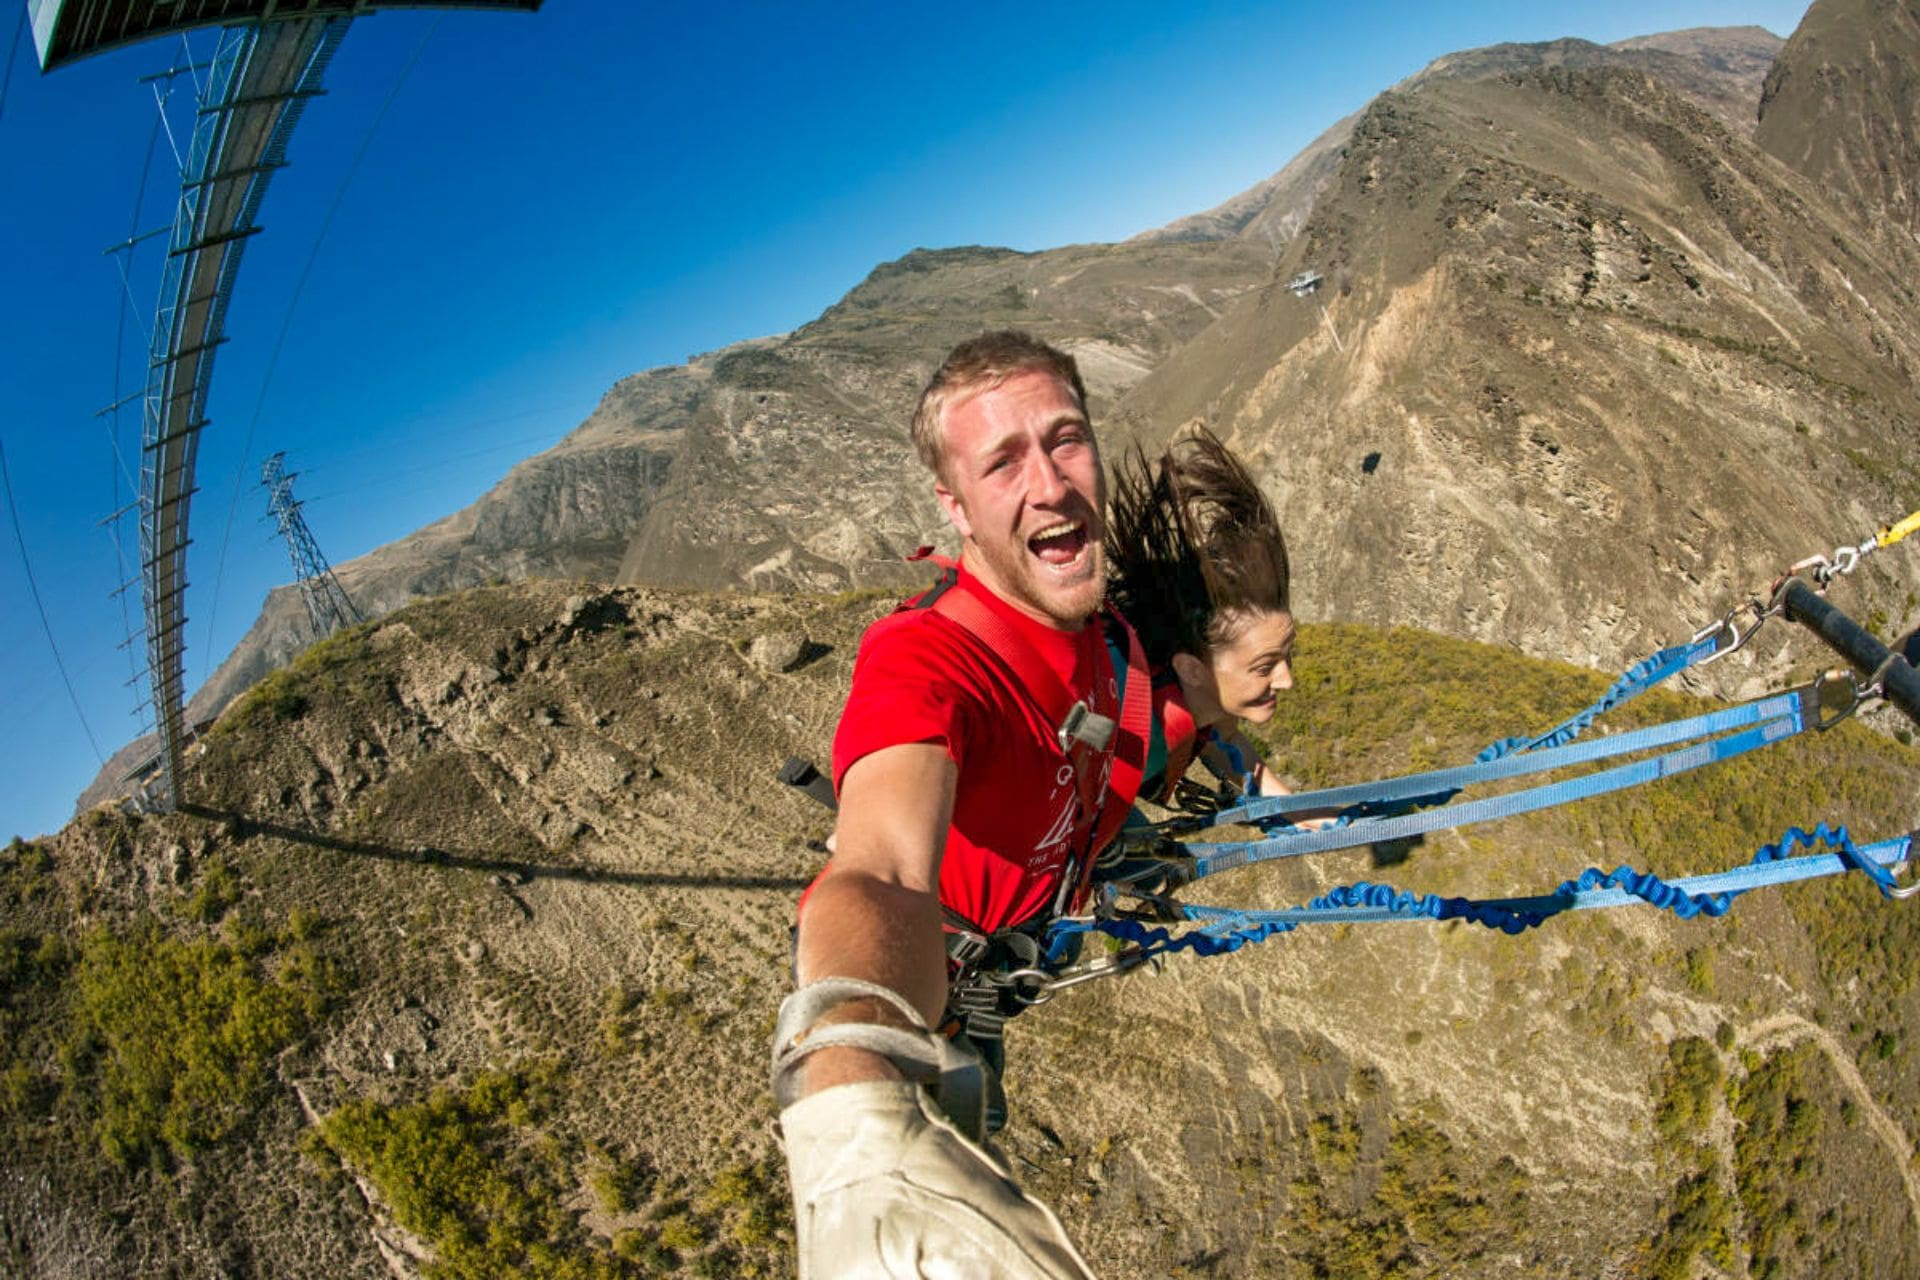 man-and-woman-attached-to-bungy-rope-flying-through-valley-aj-hackett-new-zealand-nevis-swing-adrenaline-junkie-bucket-list